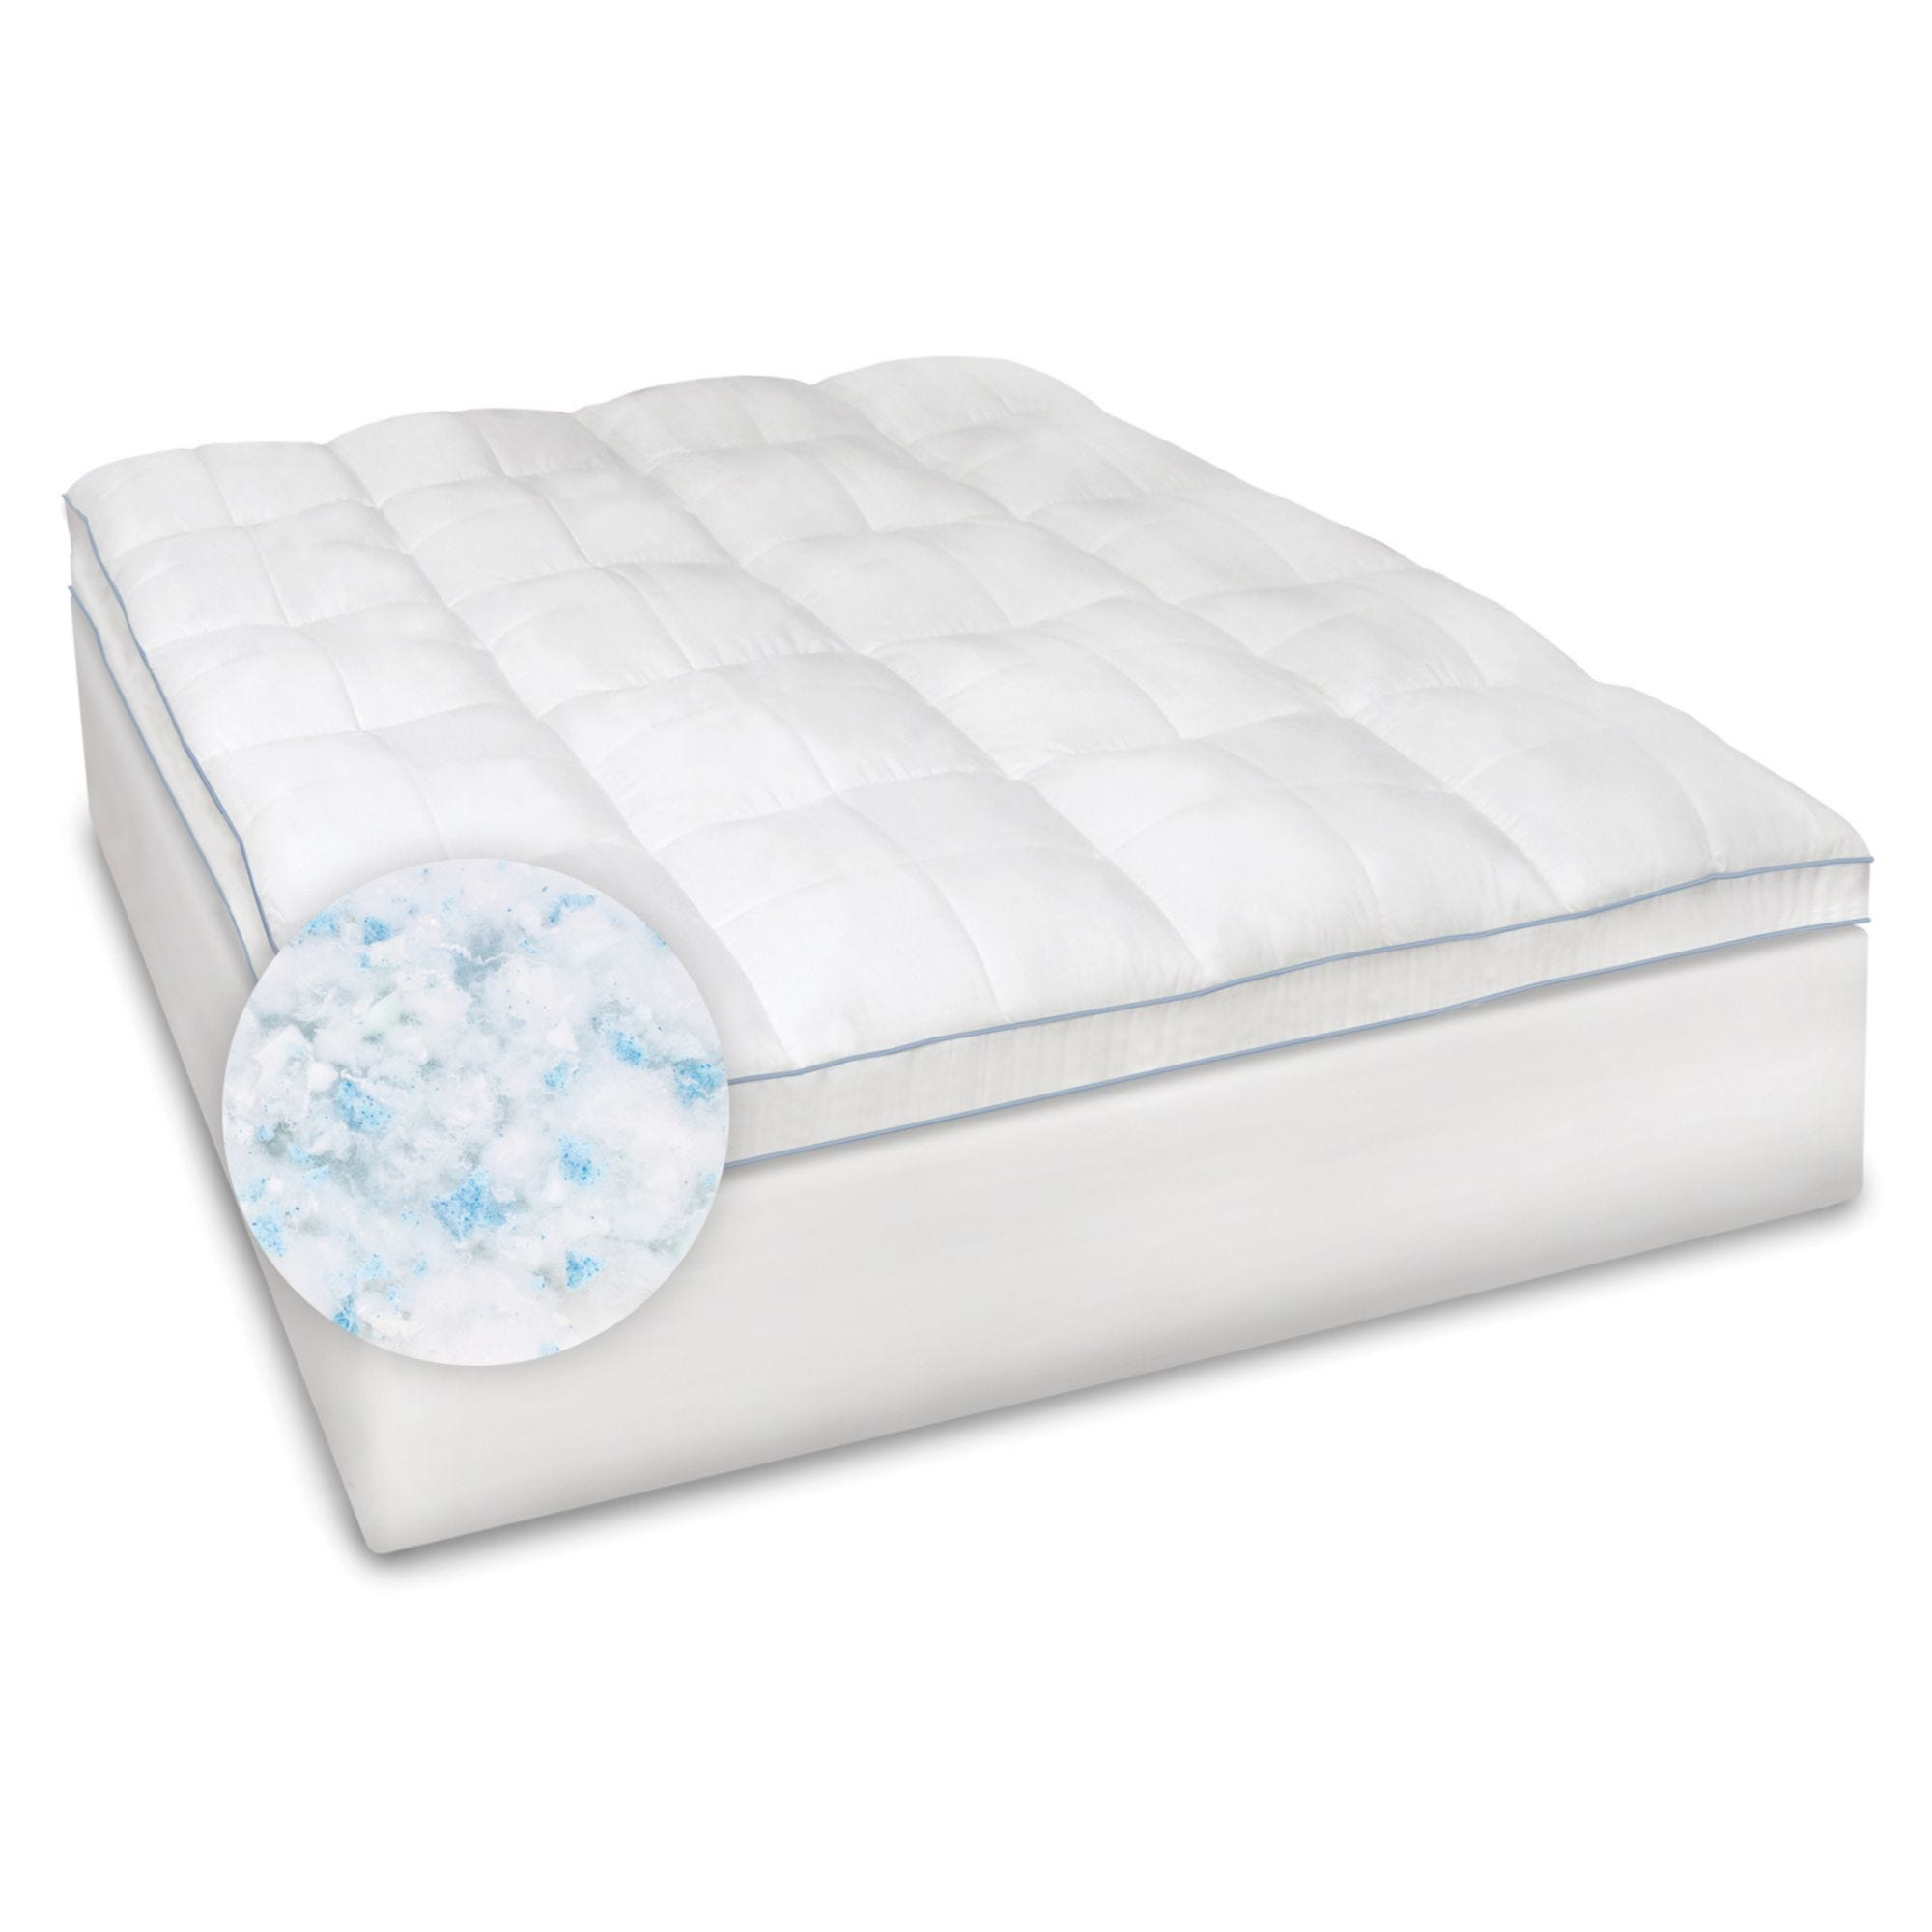 size innovations dp pad memory queen a foam cotton with year com kitchen mattress the sleep in gel usa inch amazon topper warranty cover made